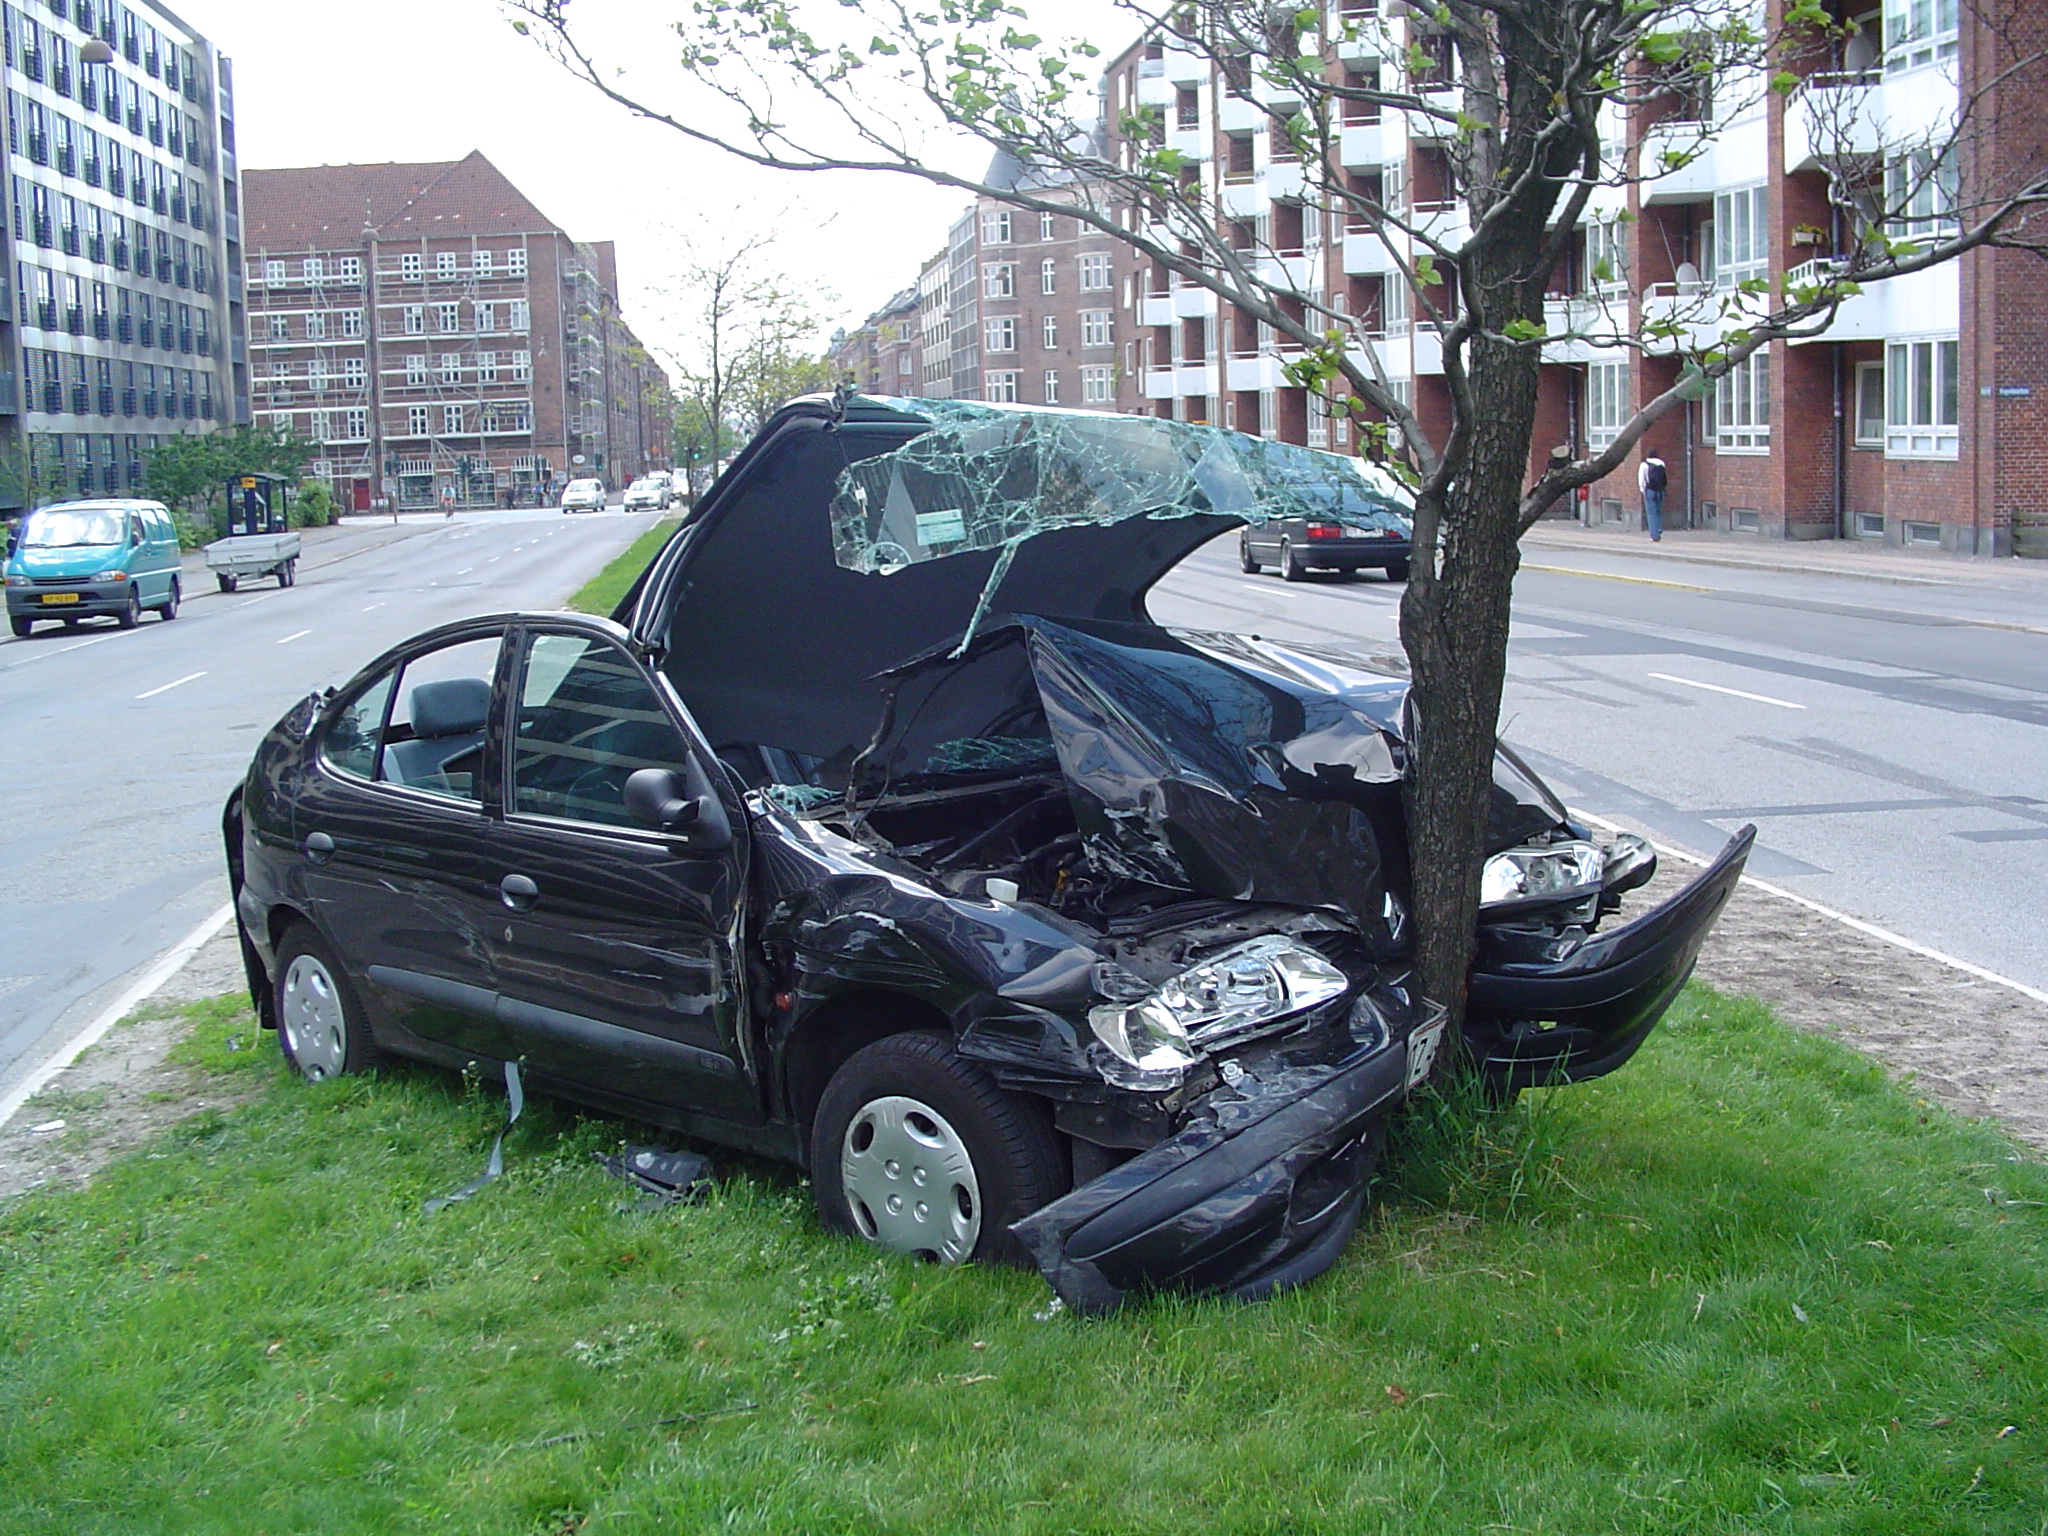 https://i1.wp.com/upload.wikimedia.org/wikipedia/commons/e/e1/Car_crash_1.jpg